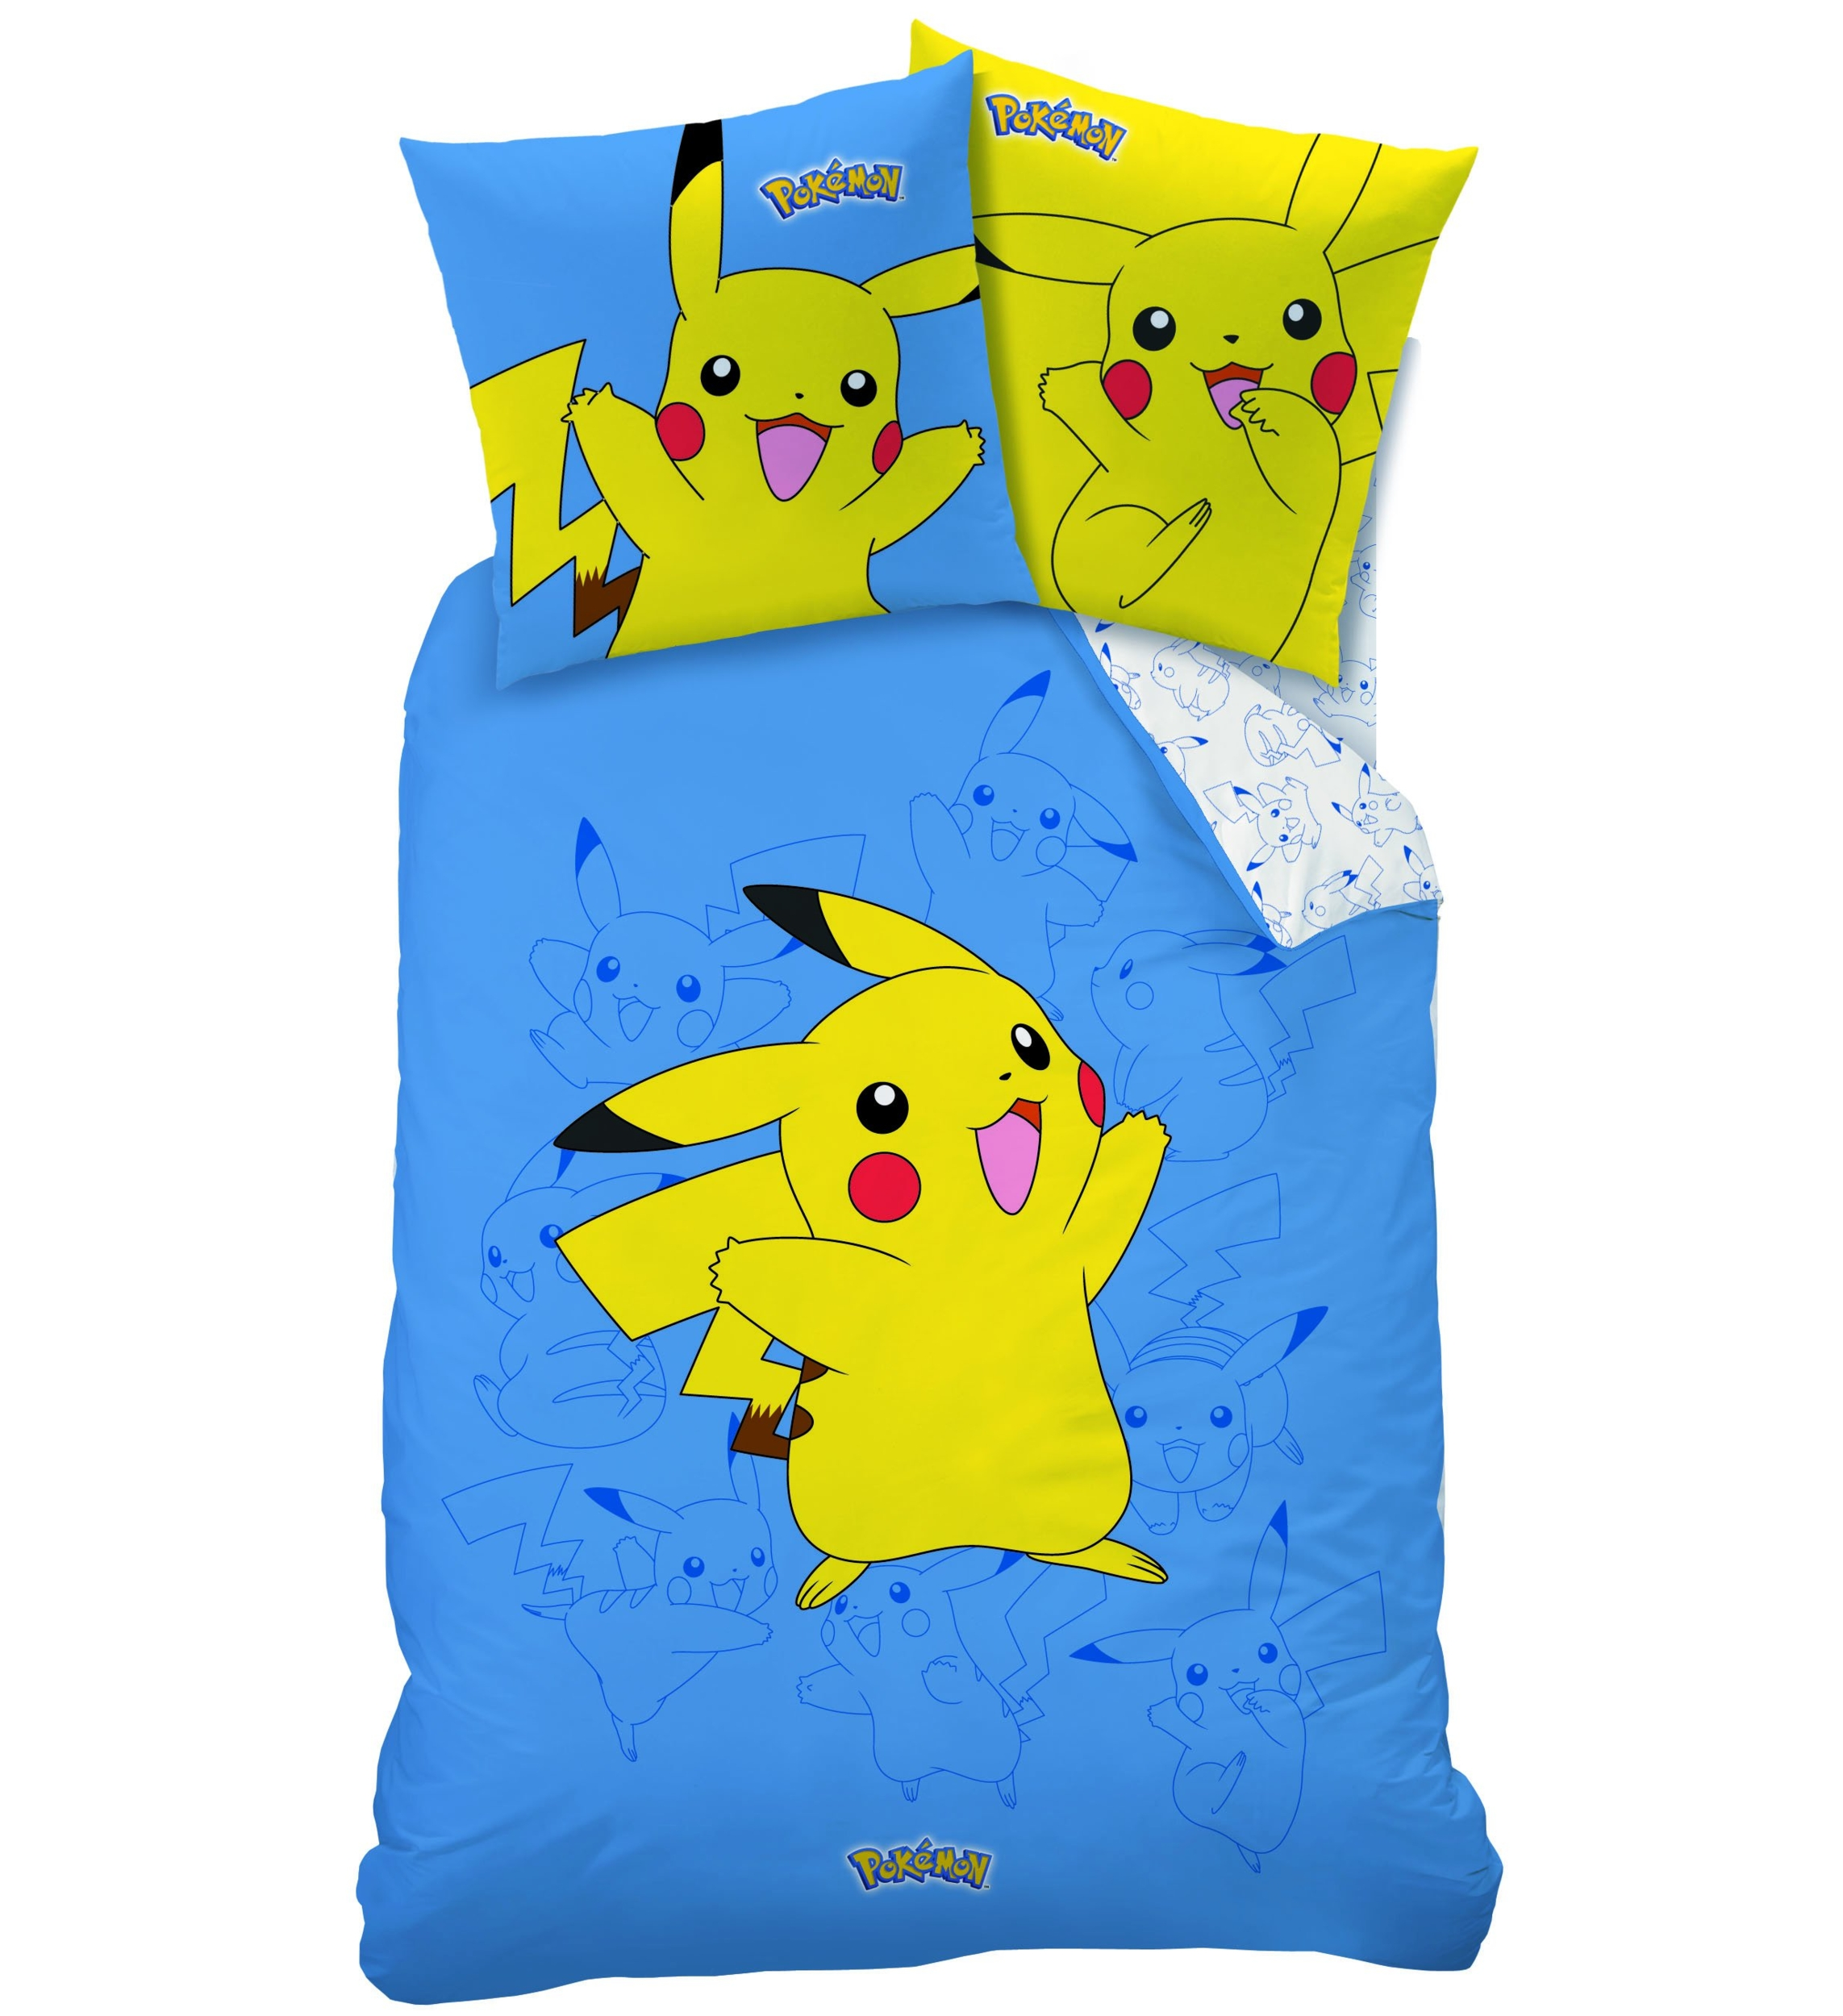 housse de couette pokemon parure de lit 140 x 200 cm pikachu decokids tous leurs h ros. Black Bedroom Furniture Sets. Home Design Ideas